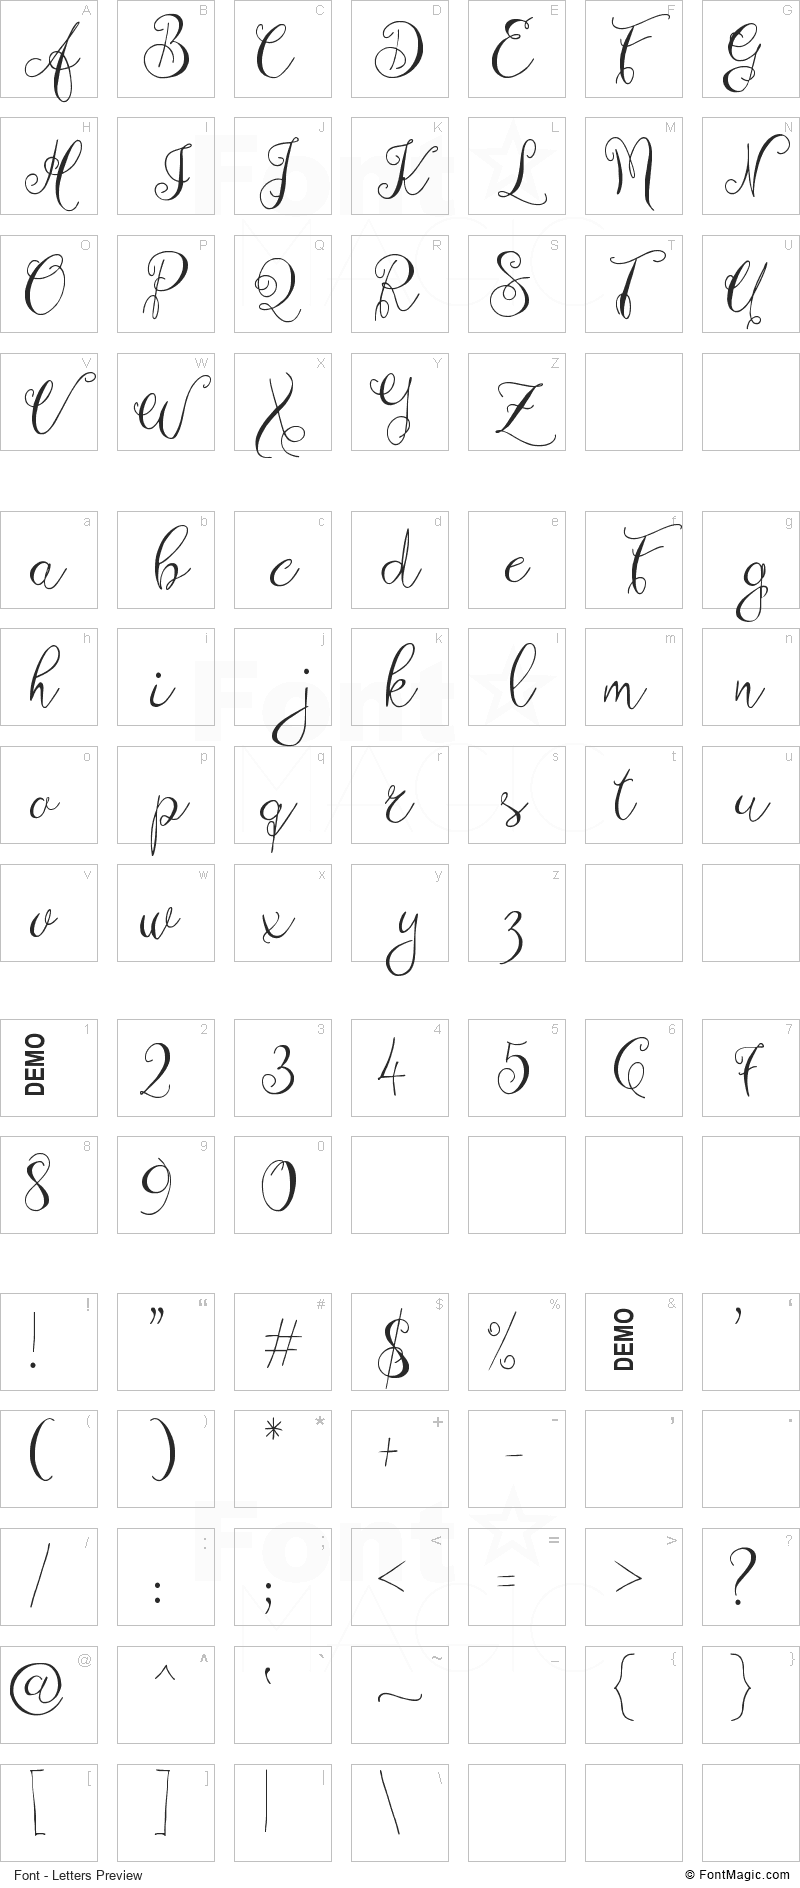 Zenyth Font - All Latters Preview Chart